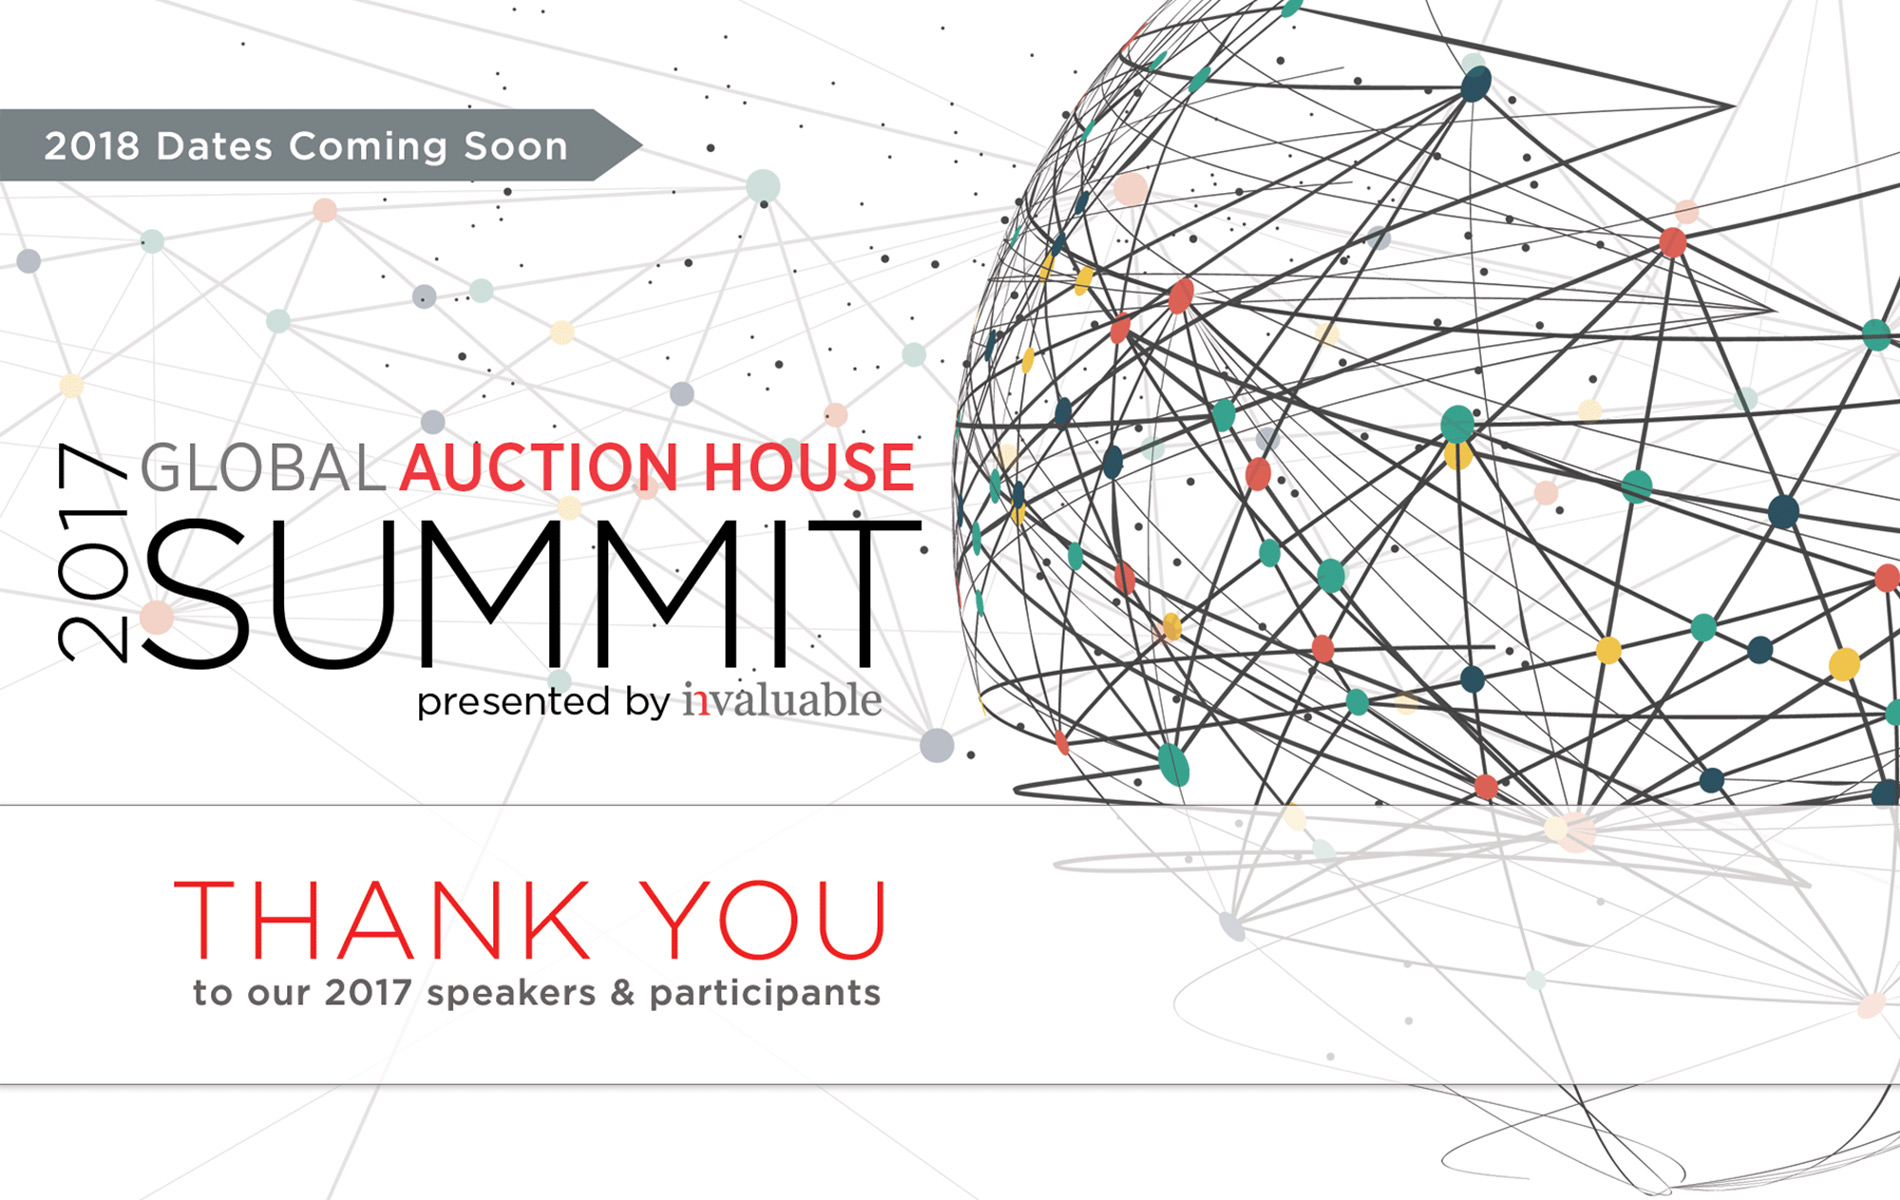 Invaluable: Global Auction House Summit